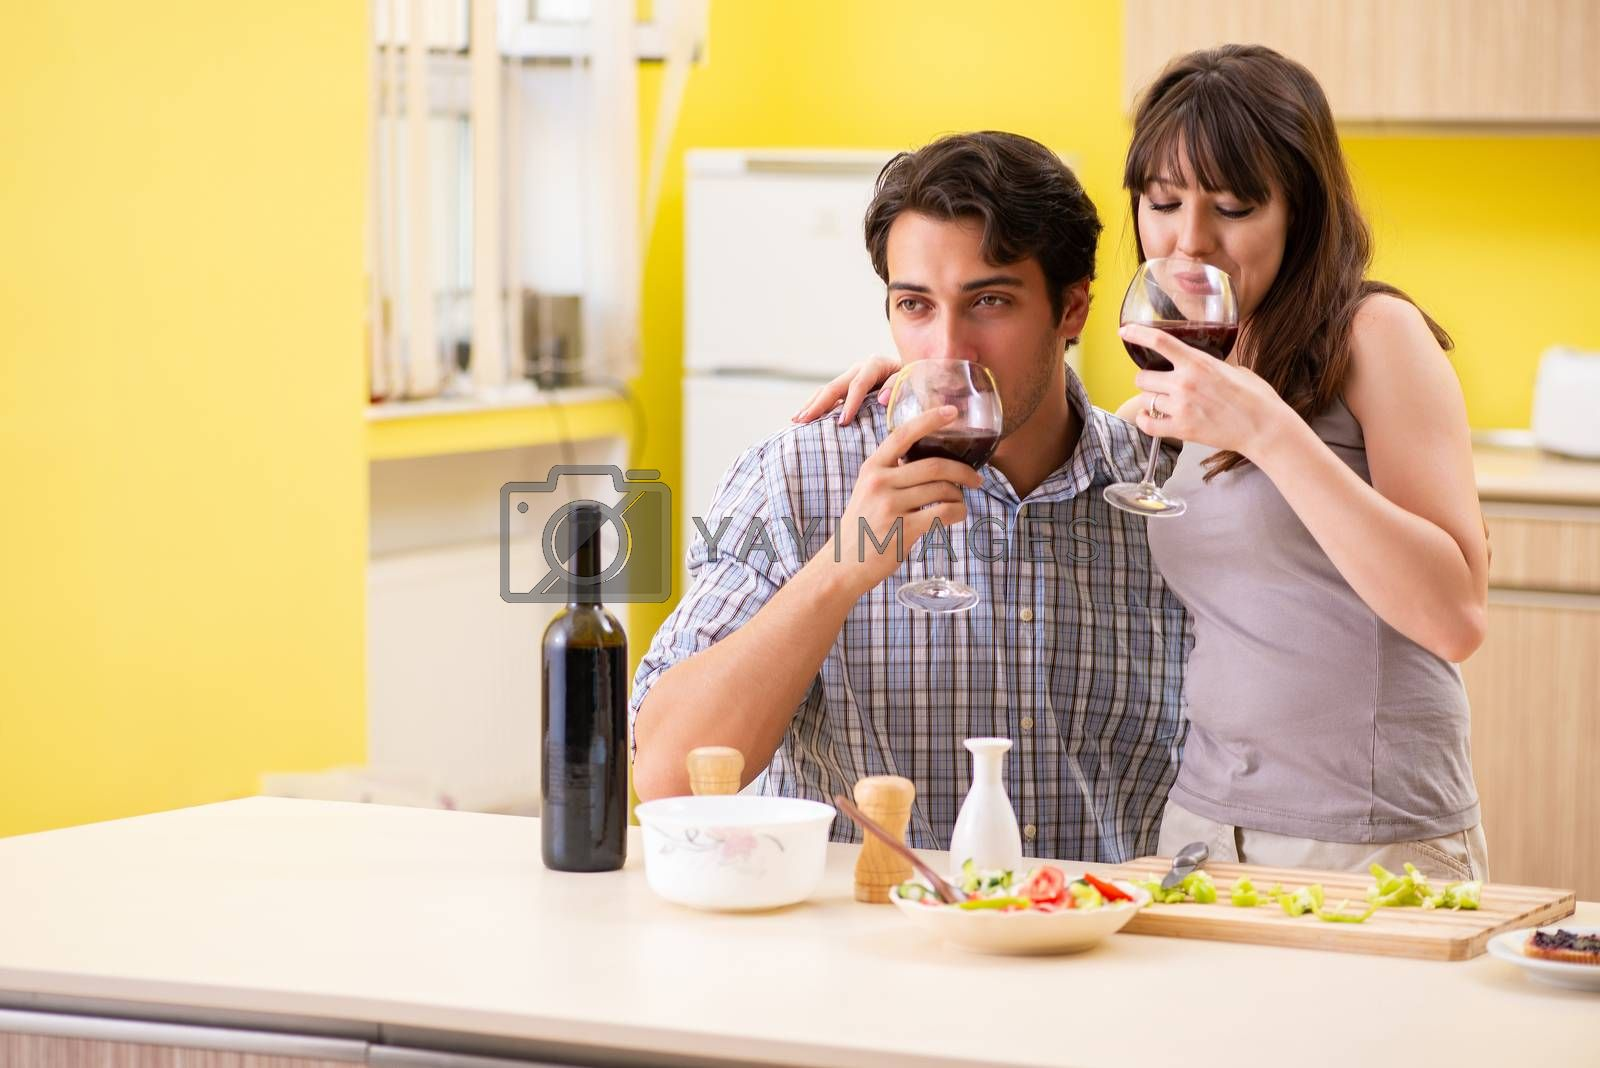 Young couple celebrating wedding anniversary at kitchen